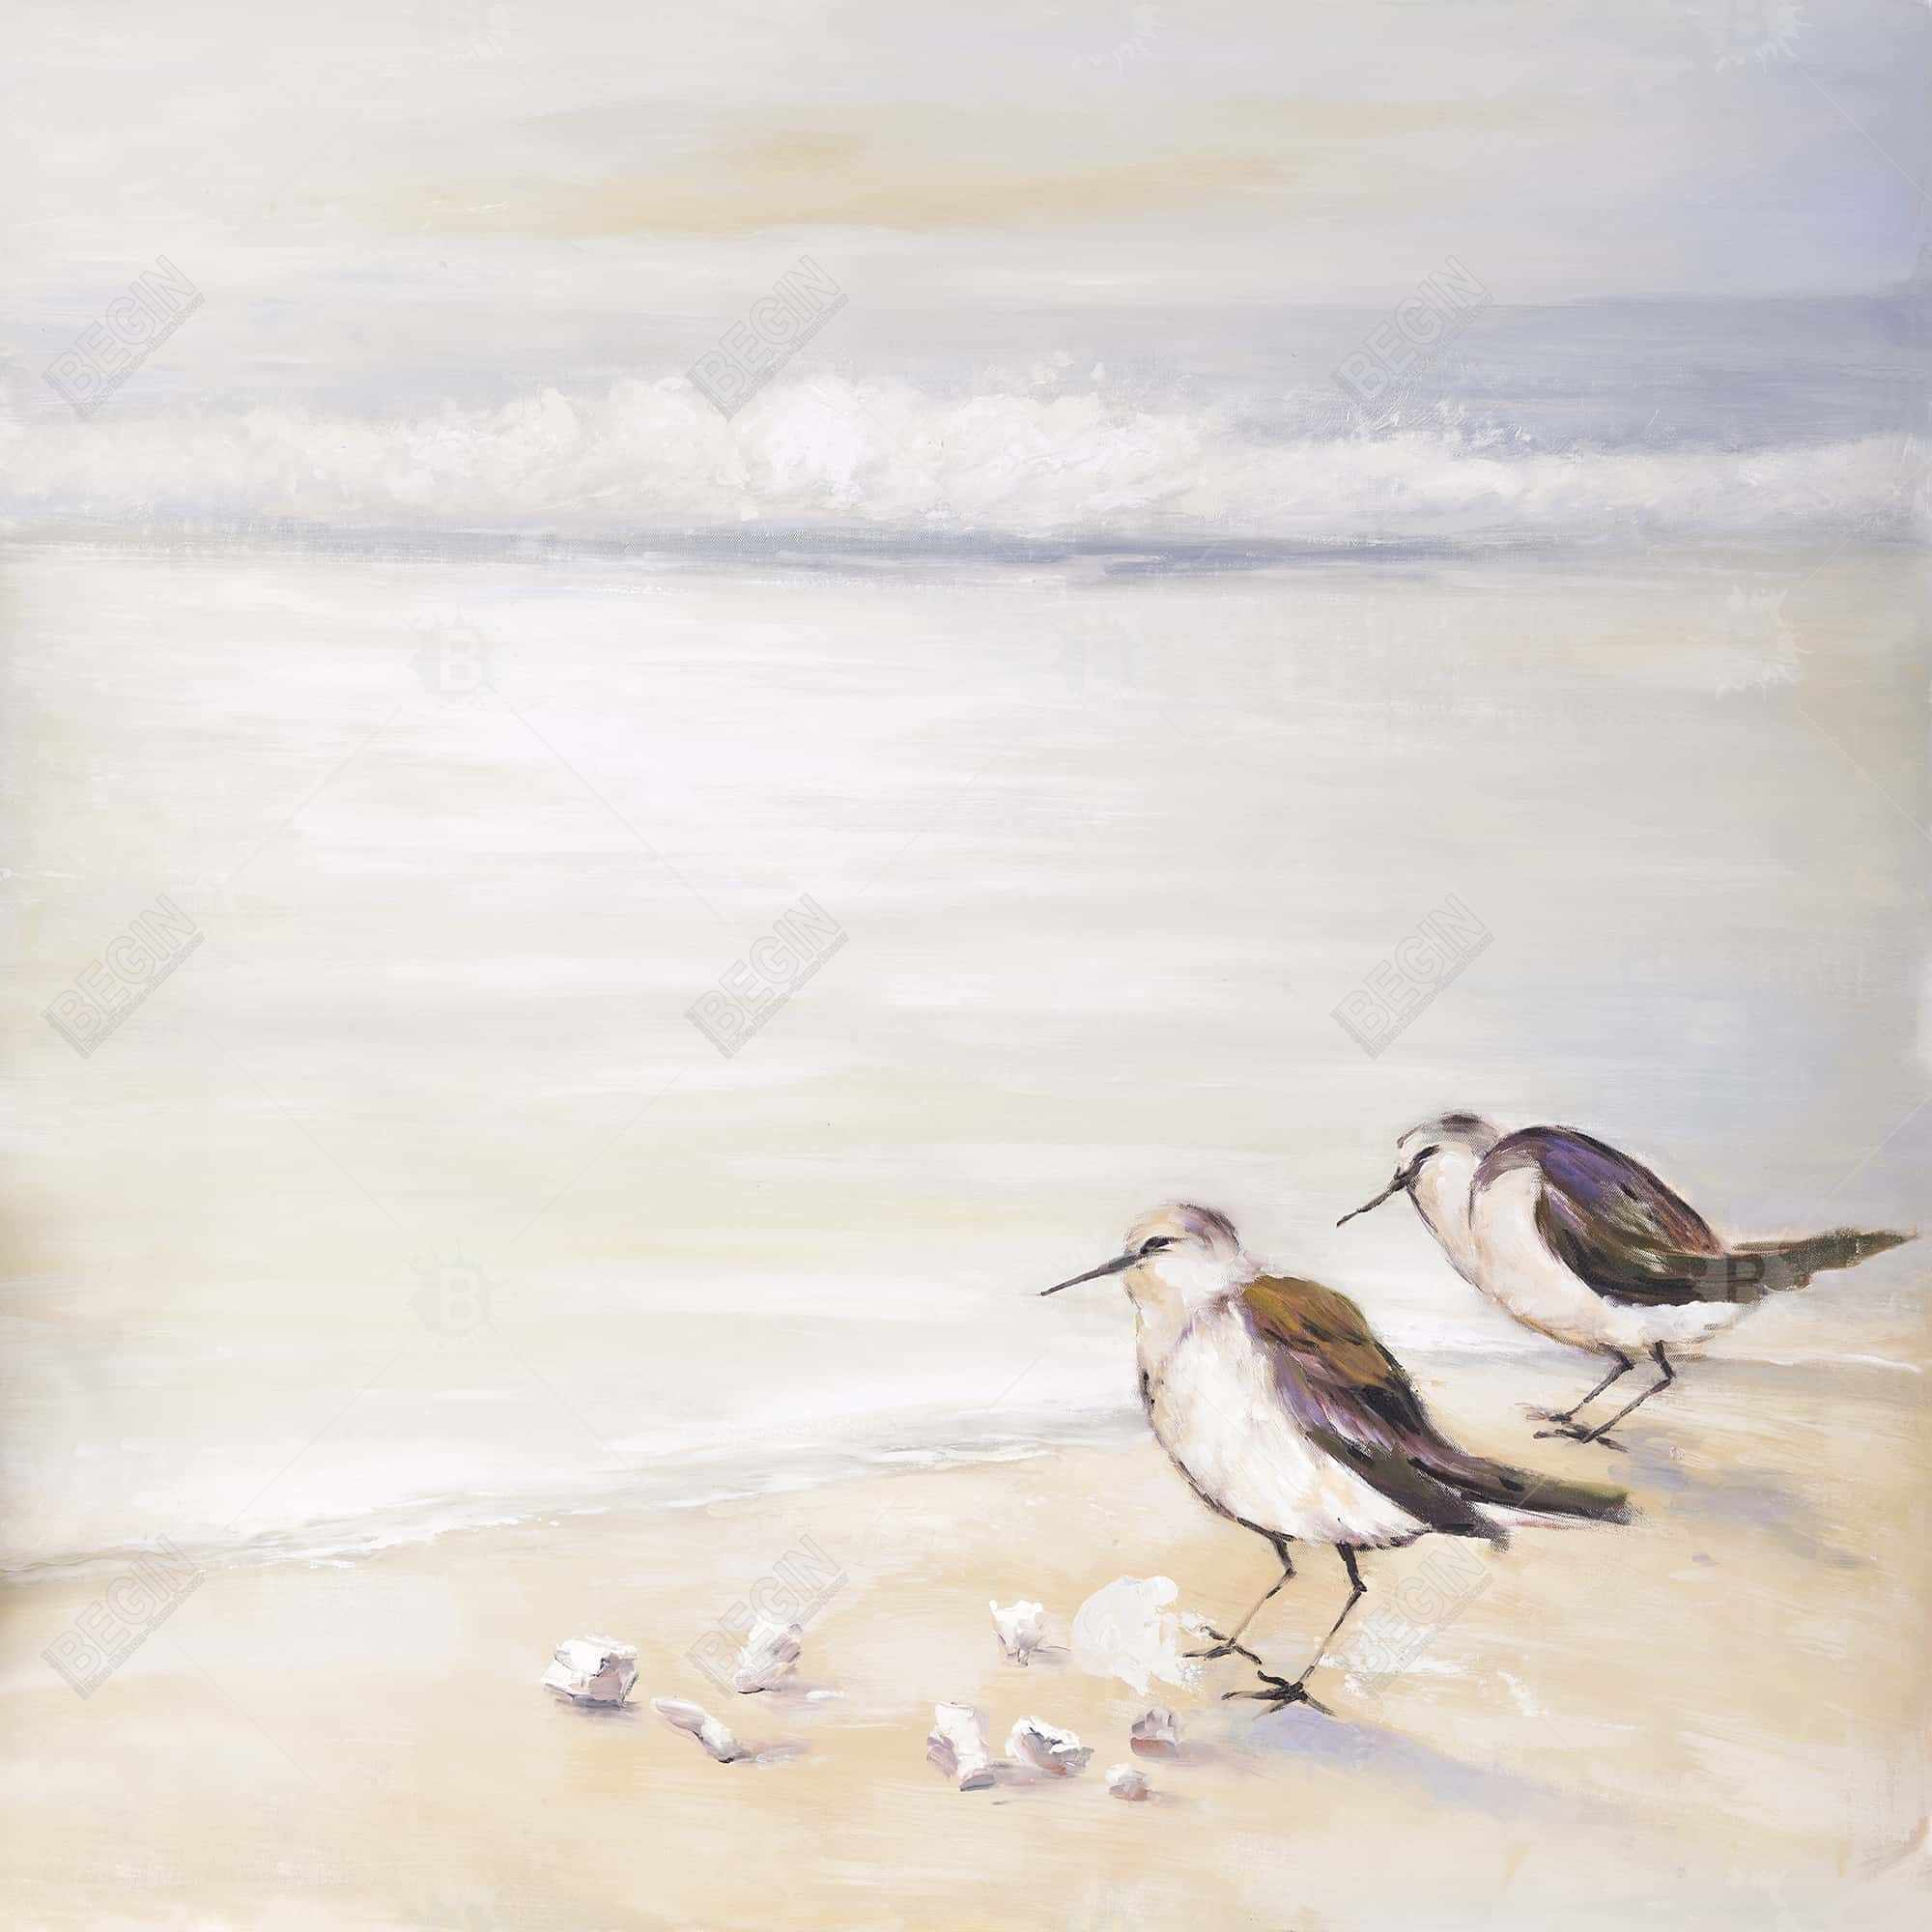 Two sandpipers on the beach